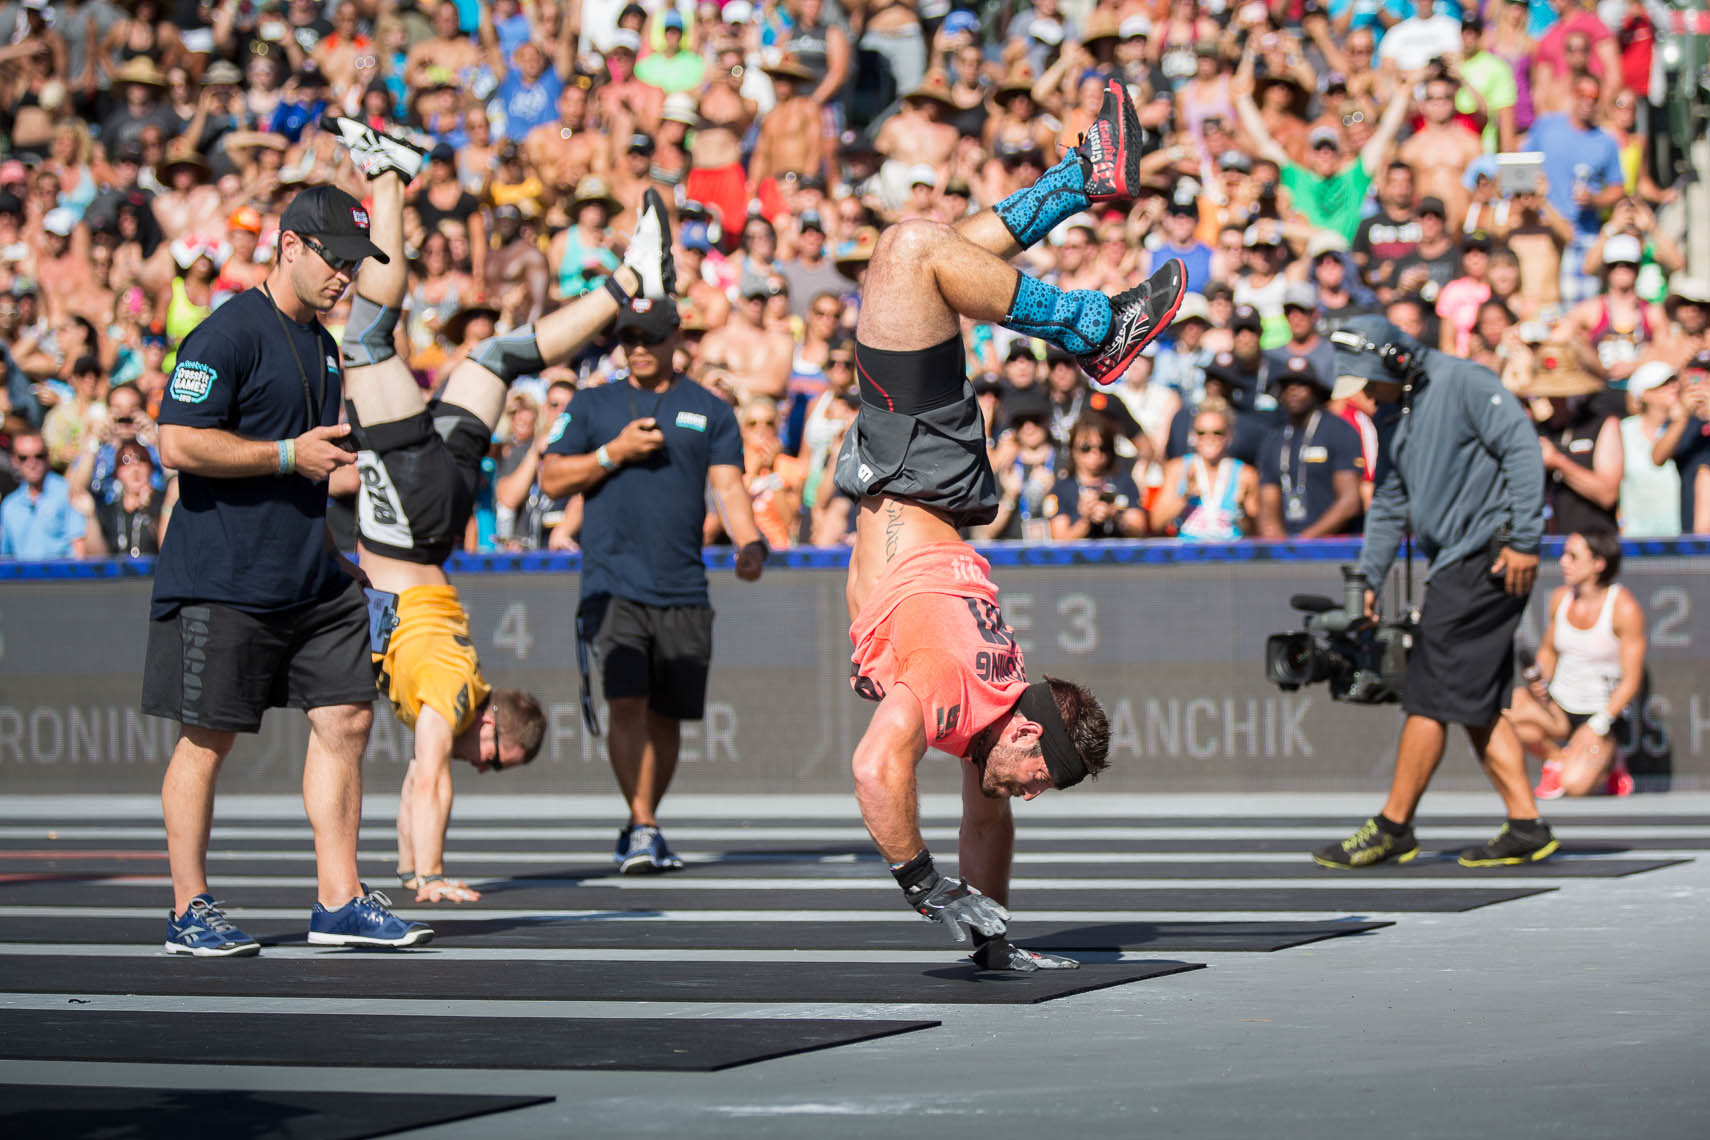 Athlete Rich Froning